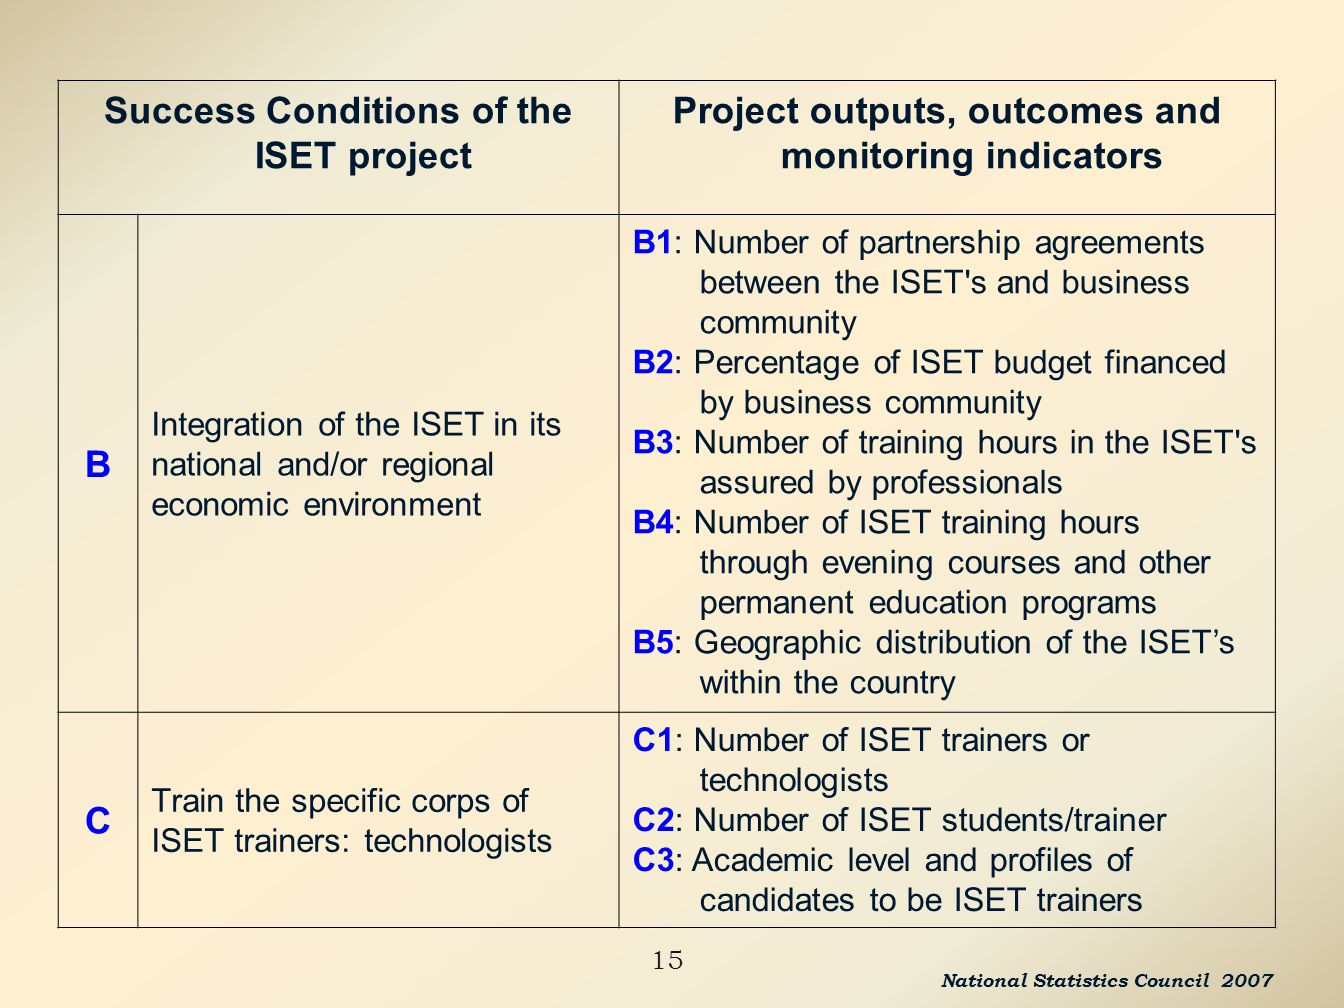 15 Success Conditions of the ISET project Project outputs, outcomes and monitoring indicators B Integration of the ISET in its national and/or regional economic environment B1: Number of partnership agreements between the ISET s and business community B2: Percentage of ISET budget financed by business community B3: Number of training hours in the ISET s assured by professionals B4: Number of ISET training hours through evening courses and other permanent education programs B5: Geographic distribution of the ISETs within the country C Train the specific corps of ISET trainers: technologists C1: Number of ISET trainers or technologists C2: Number of ISET students/trainer C3: Academic level and profiles of candidates to be ISET trainers National Statistics Council 2007